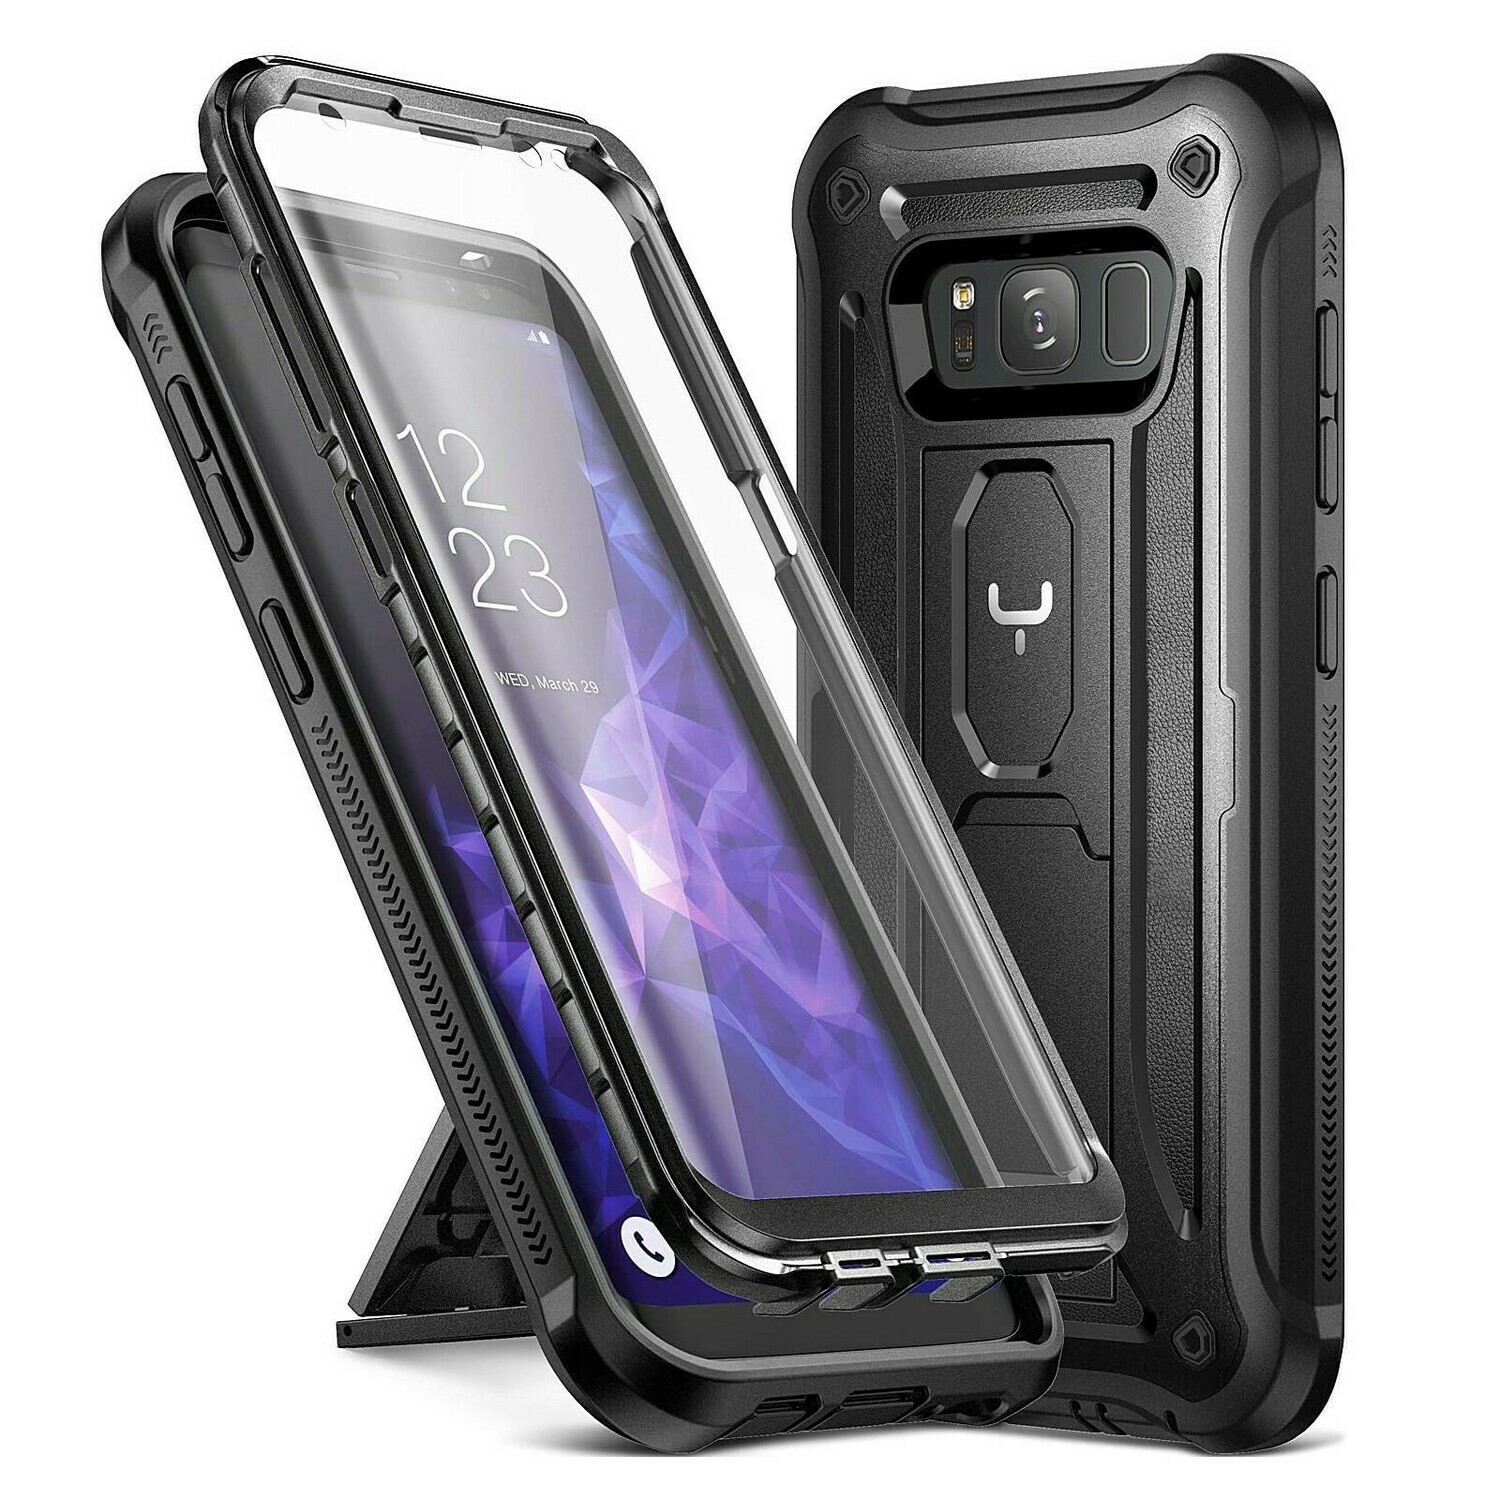 Case Galaxy S8 Normal Funda c/ Parador c/ Mica Integrada Carcasa de cubierta total Negra